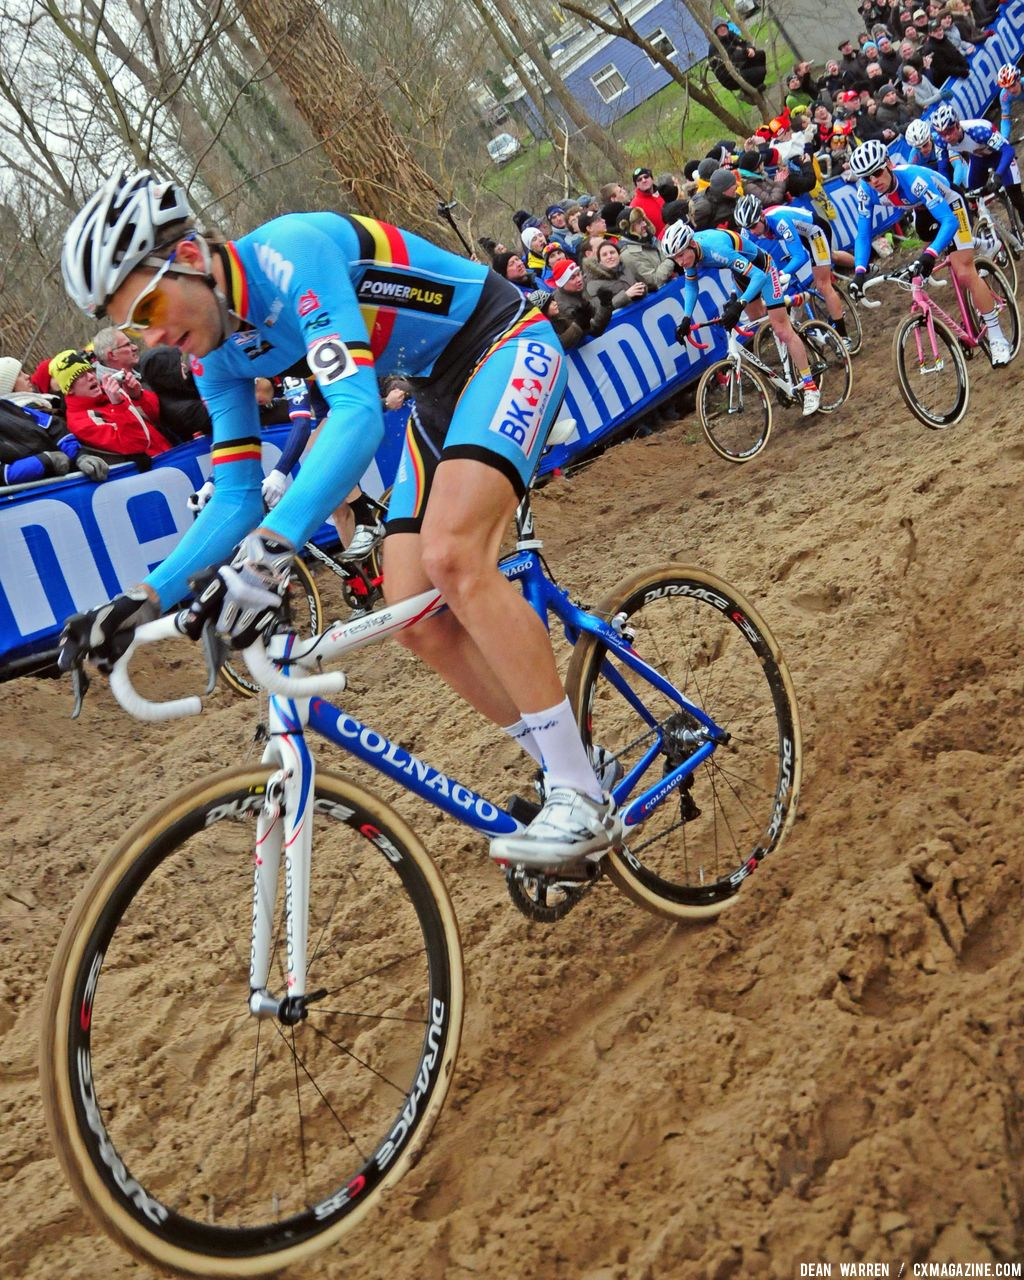 Belgium Niels Albert jumps out front at start of Koksijde Cyclocross Elite Men Worlds © Dean Warren